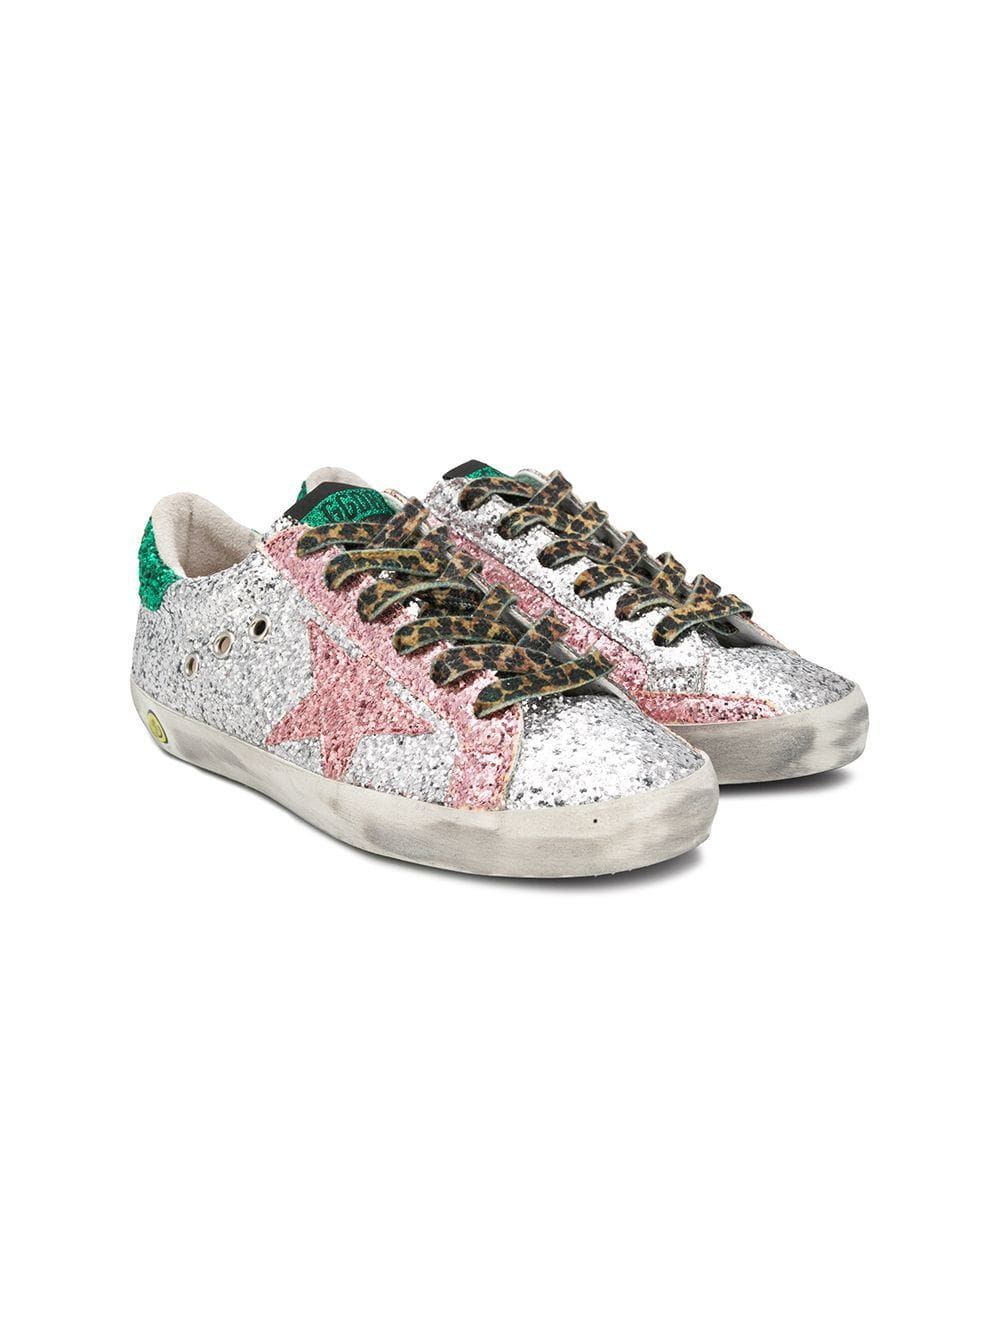 353a532302b6 Golden Goose Deluxe Brand Kids Superstar sneakers | Clothes for ...